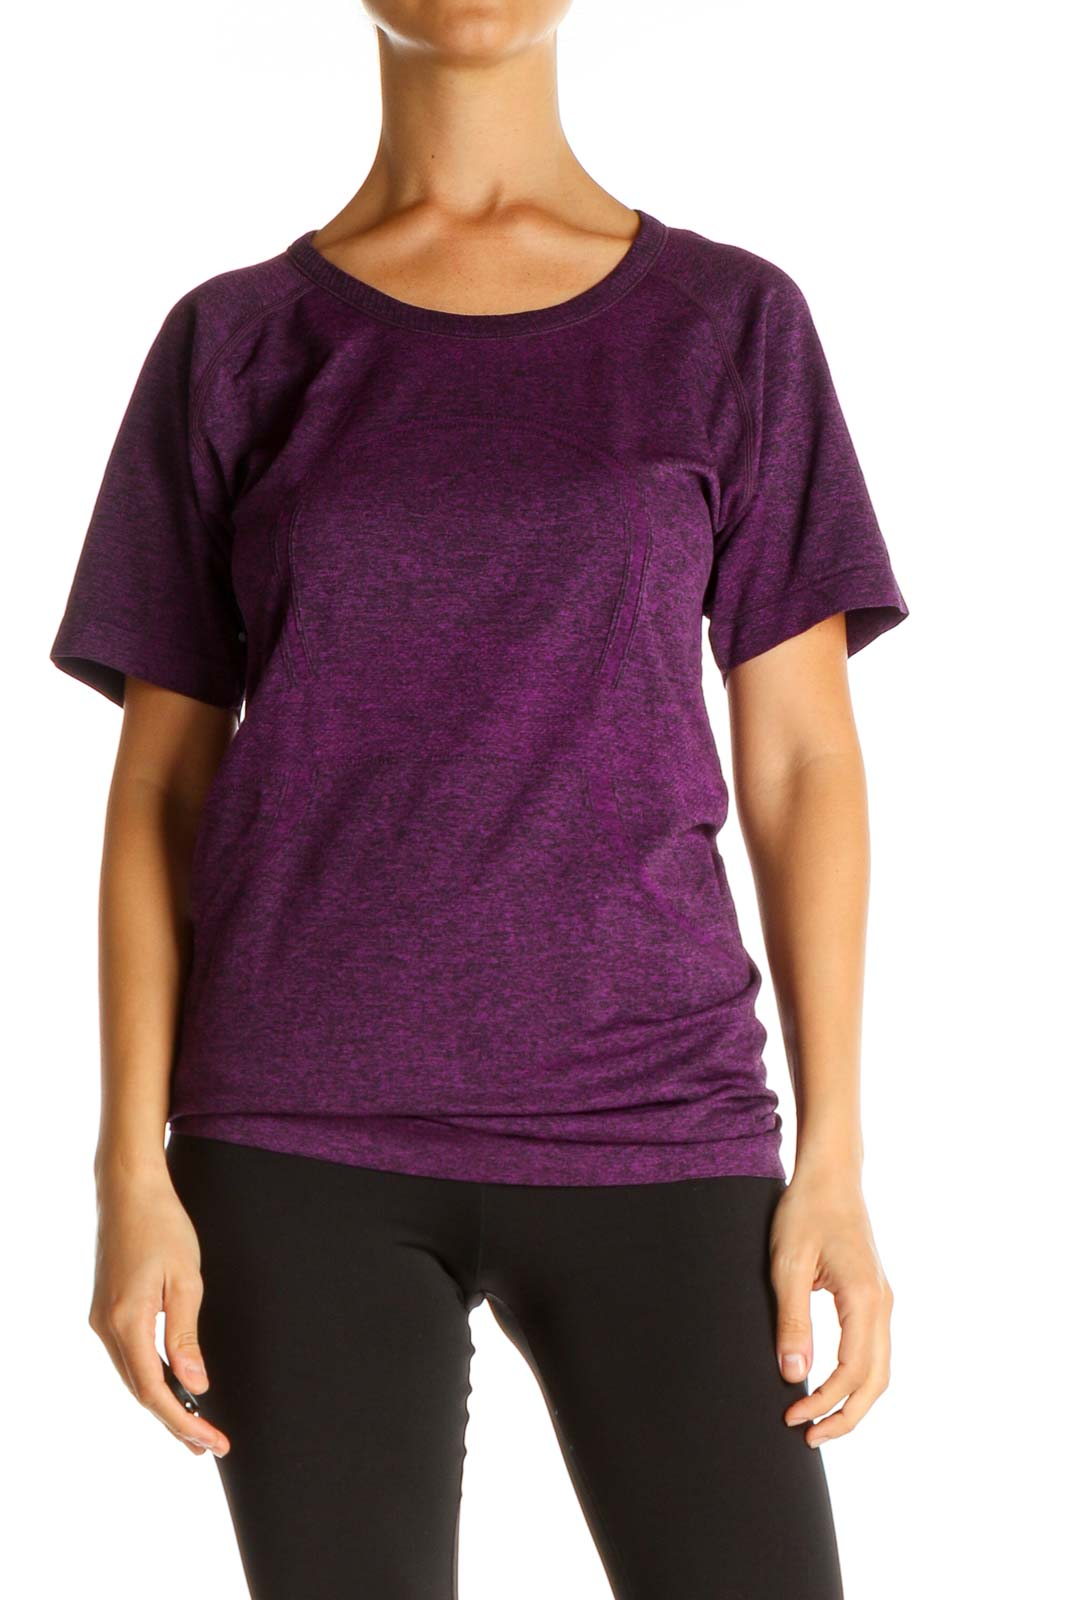 Purple Solid Activewear T-Shirt Front